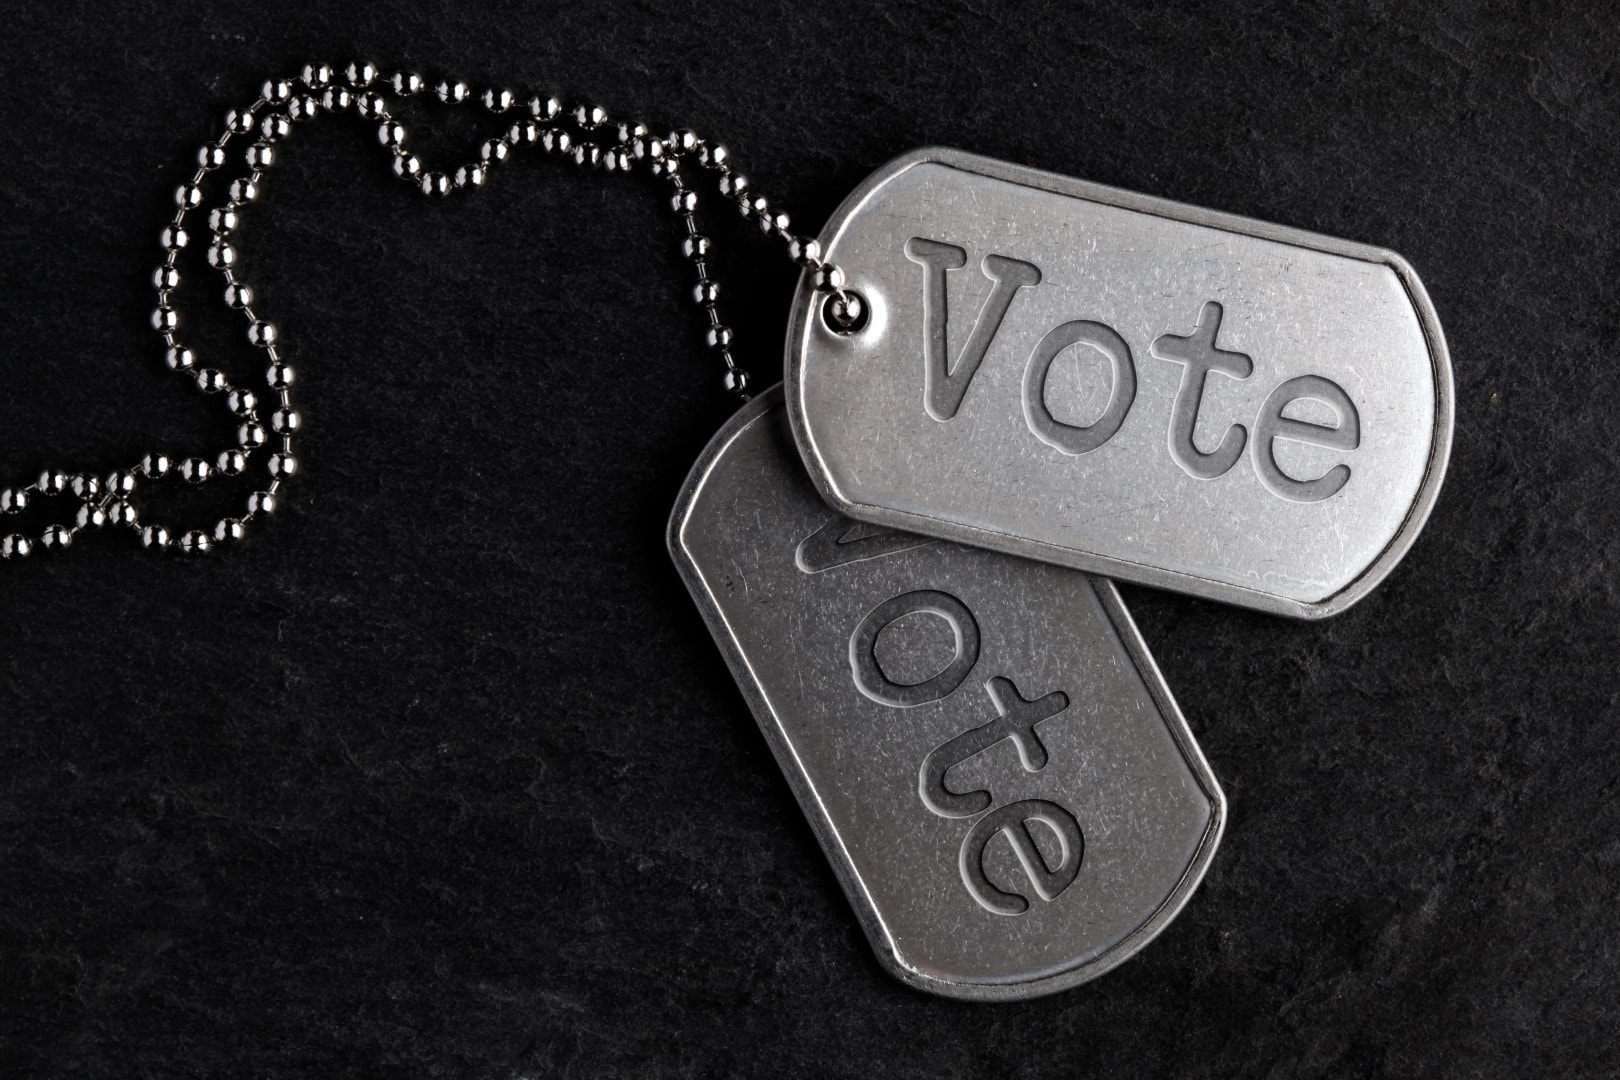 Old military dog tags - Vote